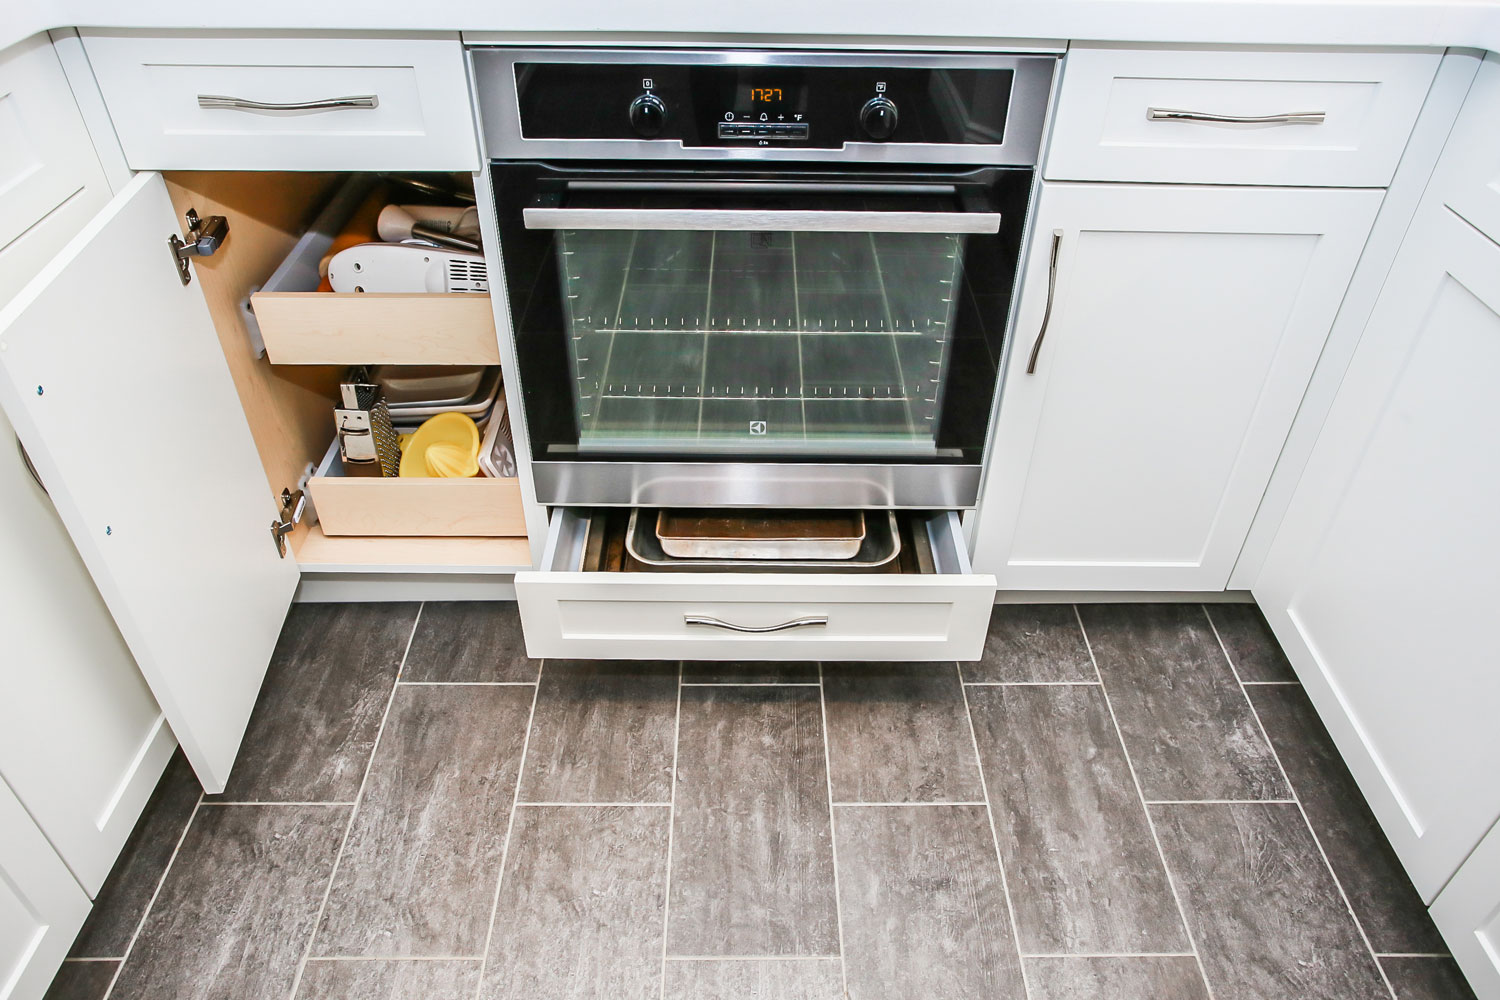 warming drawer and hidden pot drawers